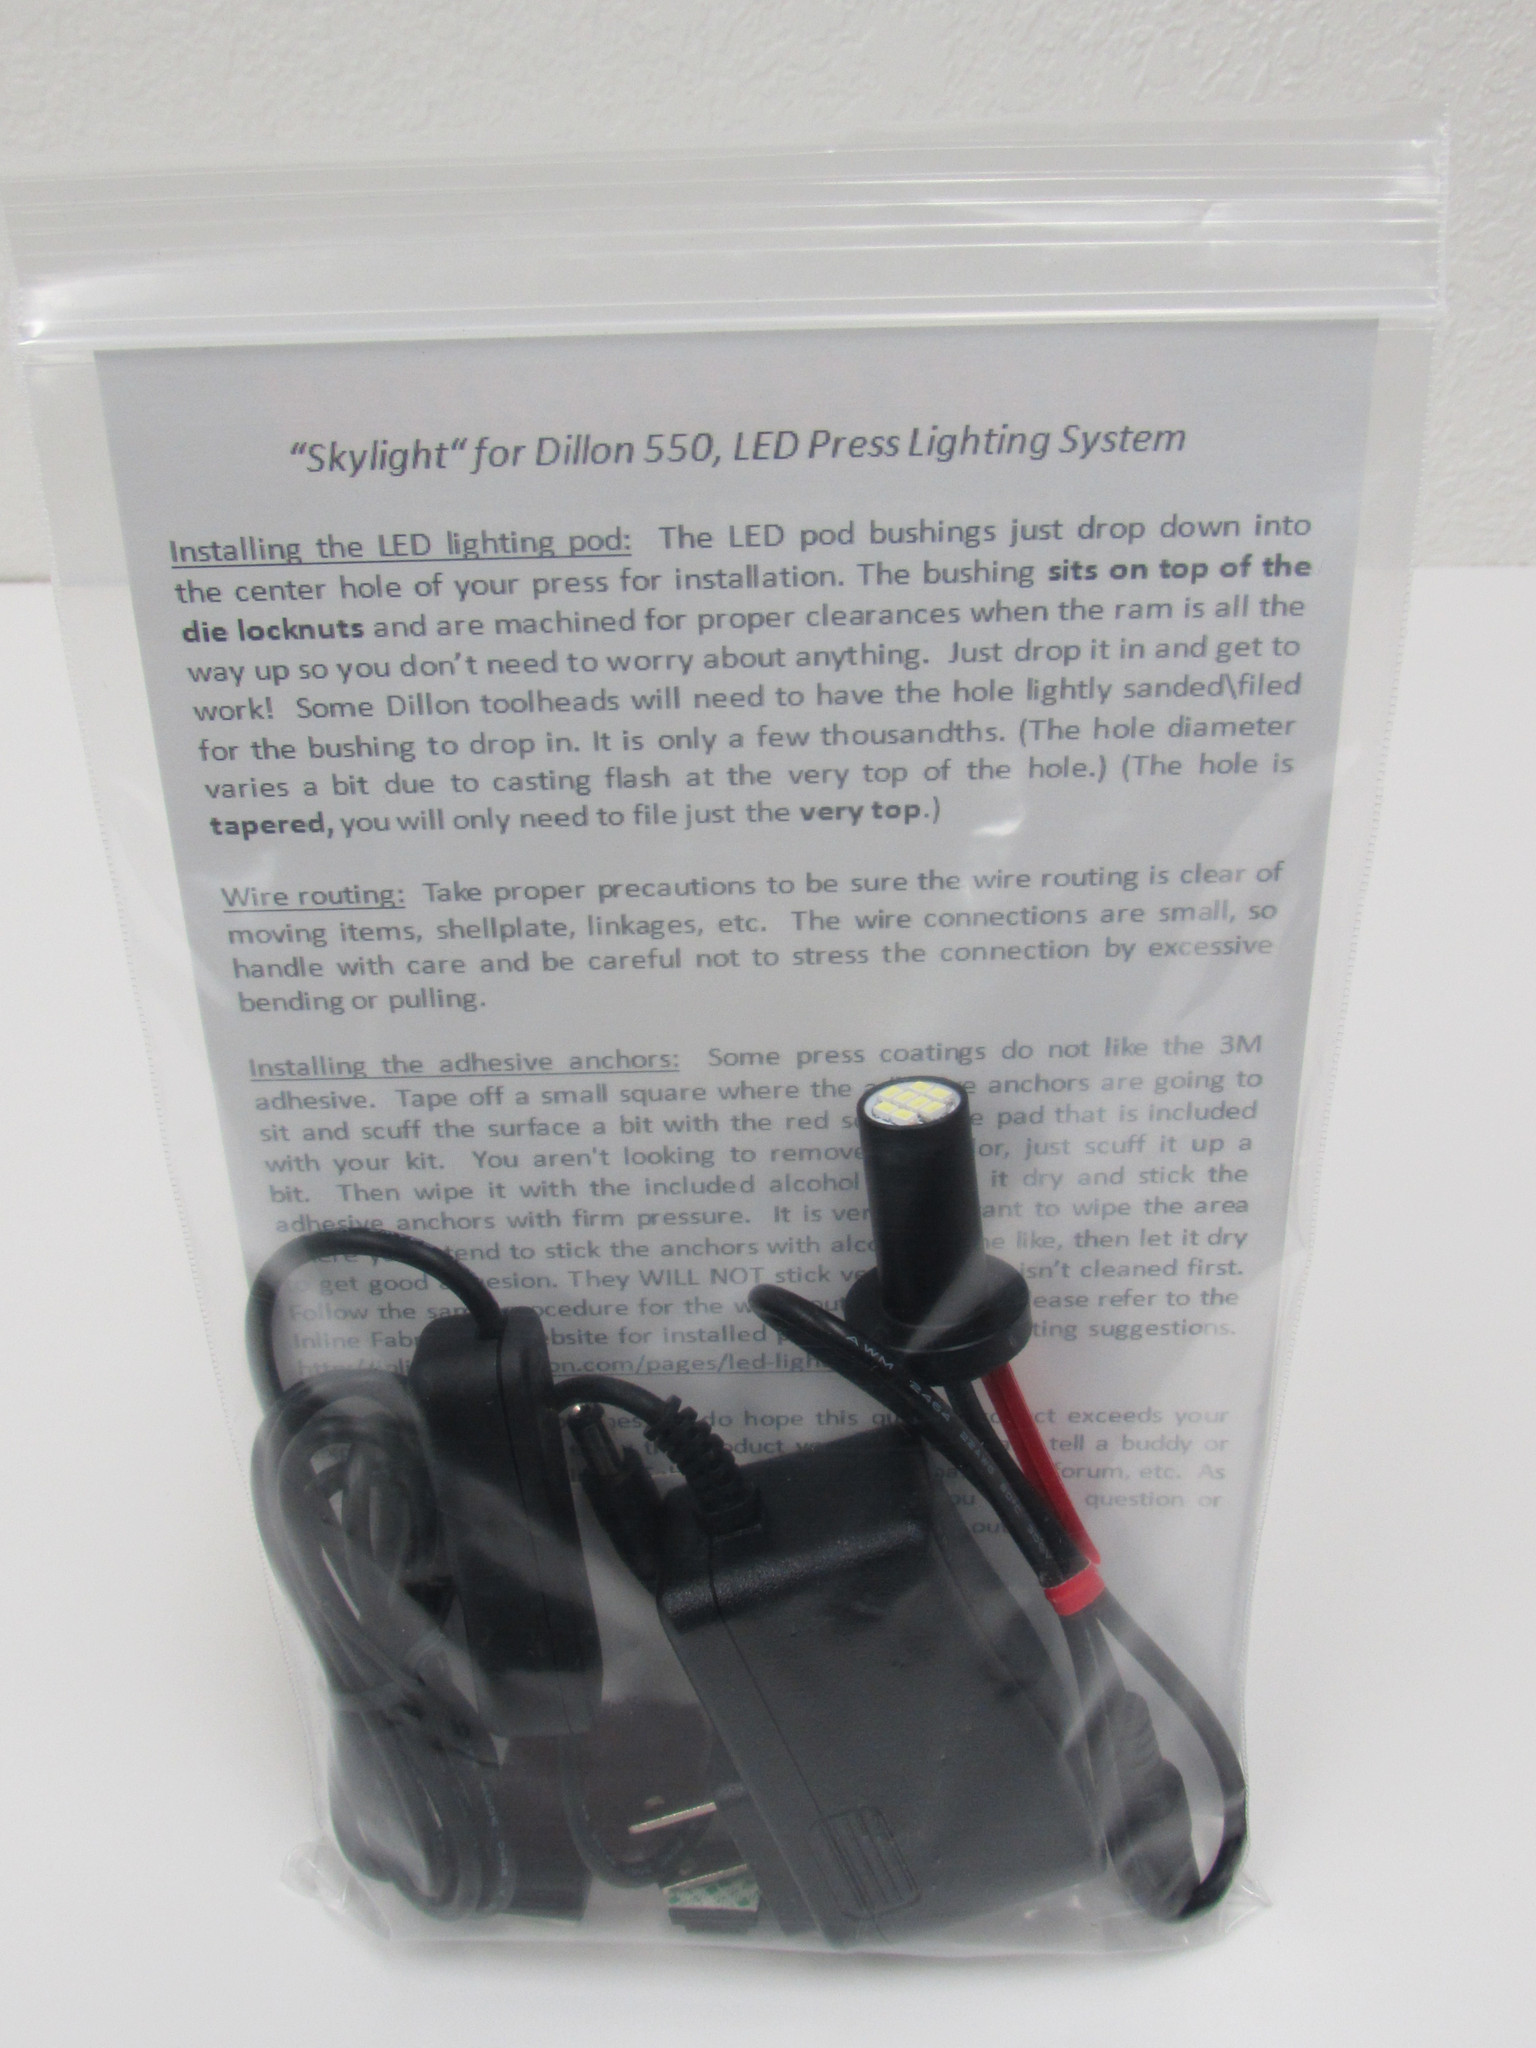 InLine Fabrication LED lighting system for Dillon 550